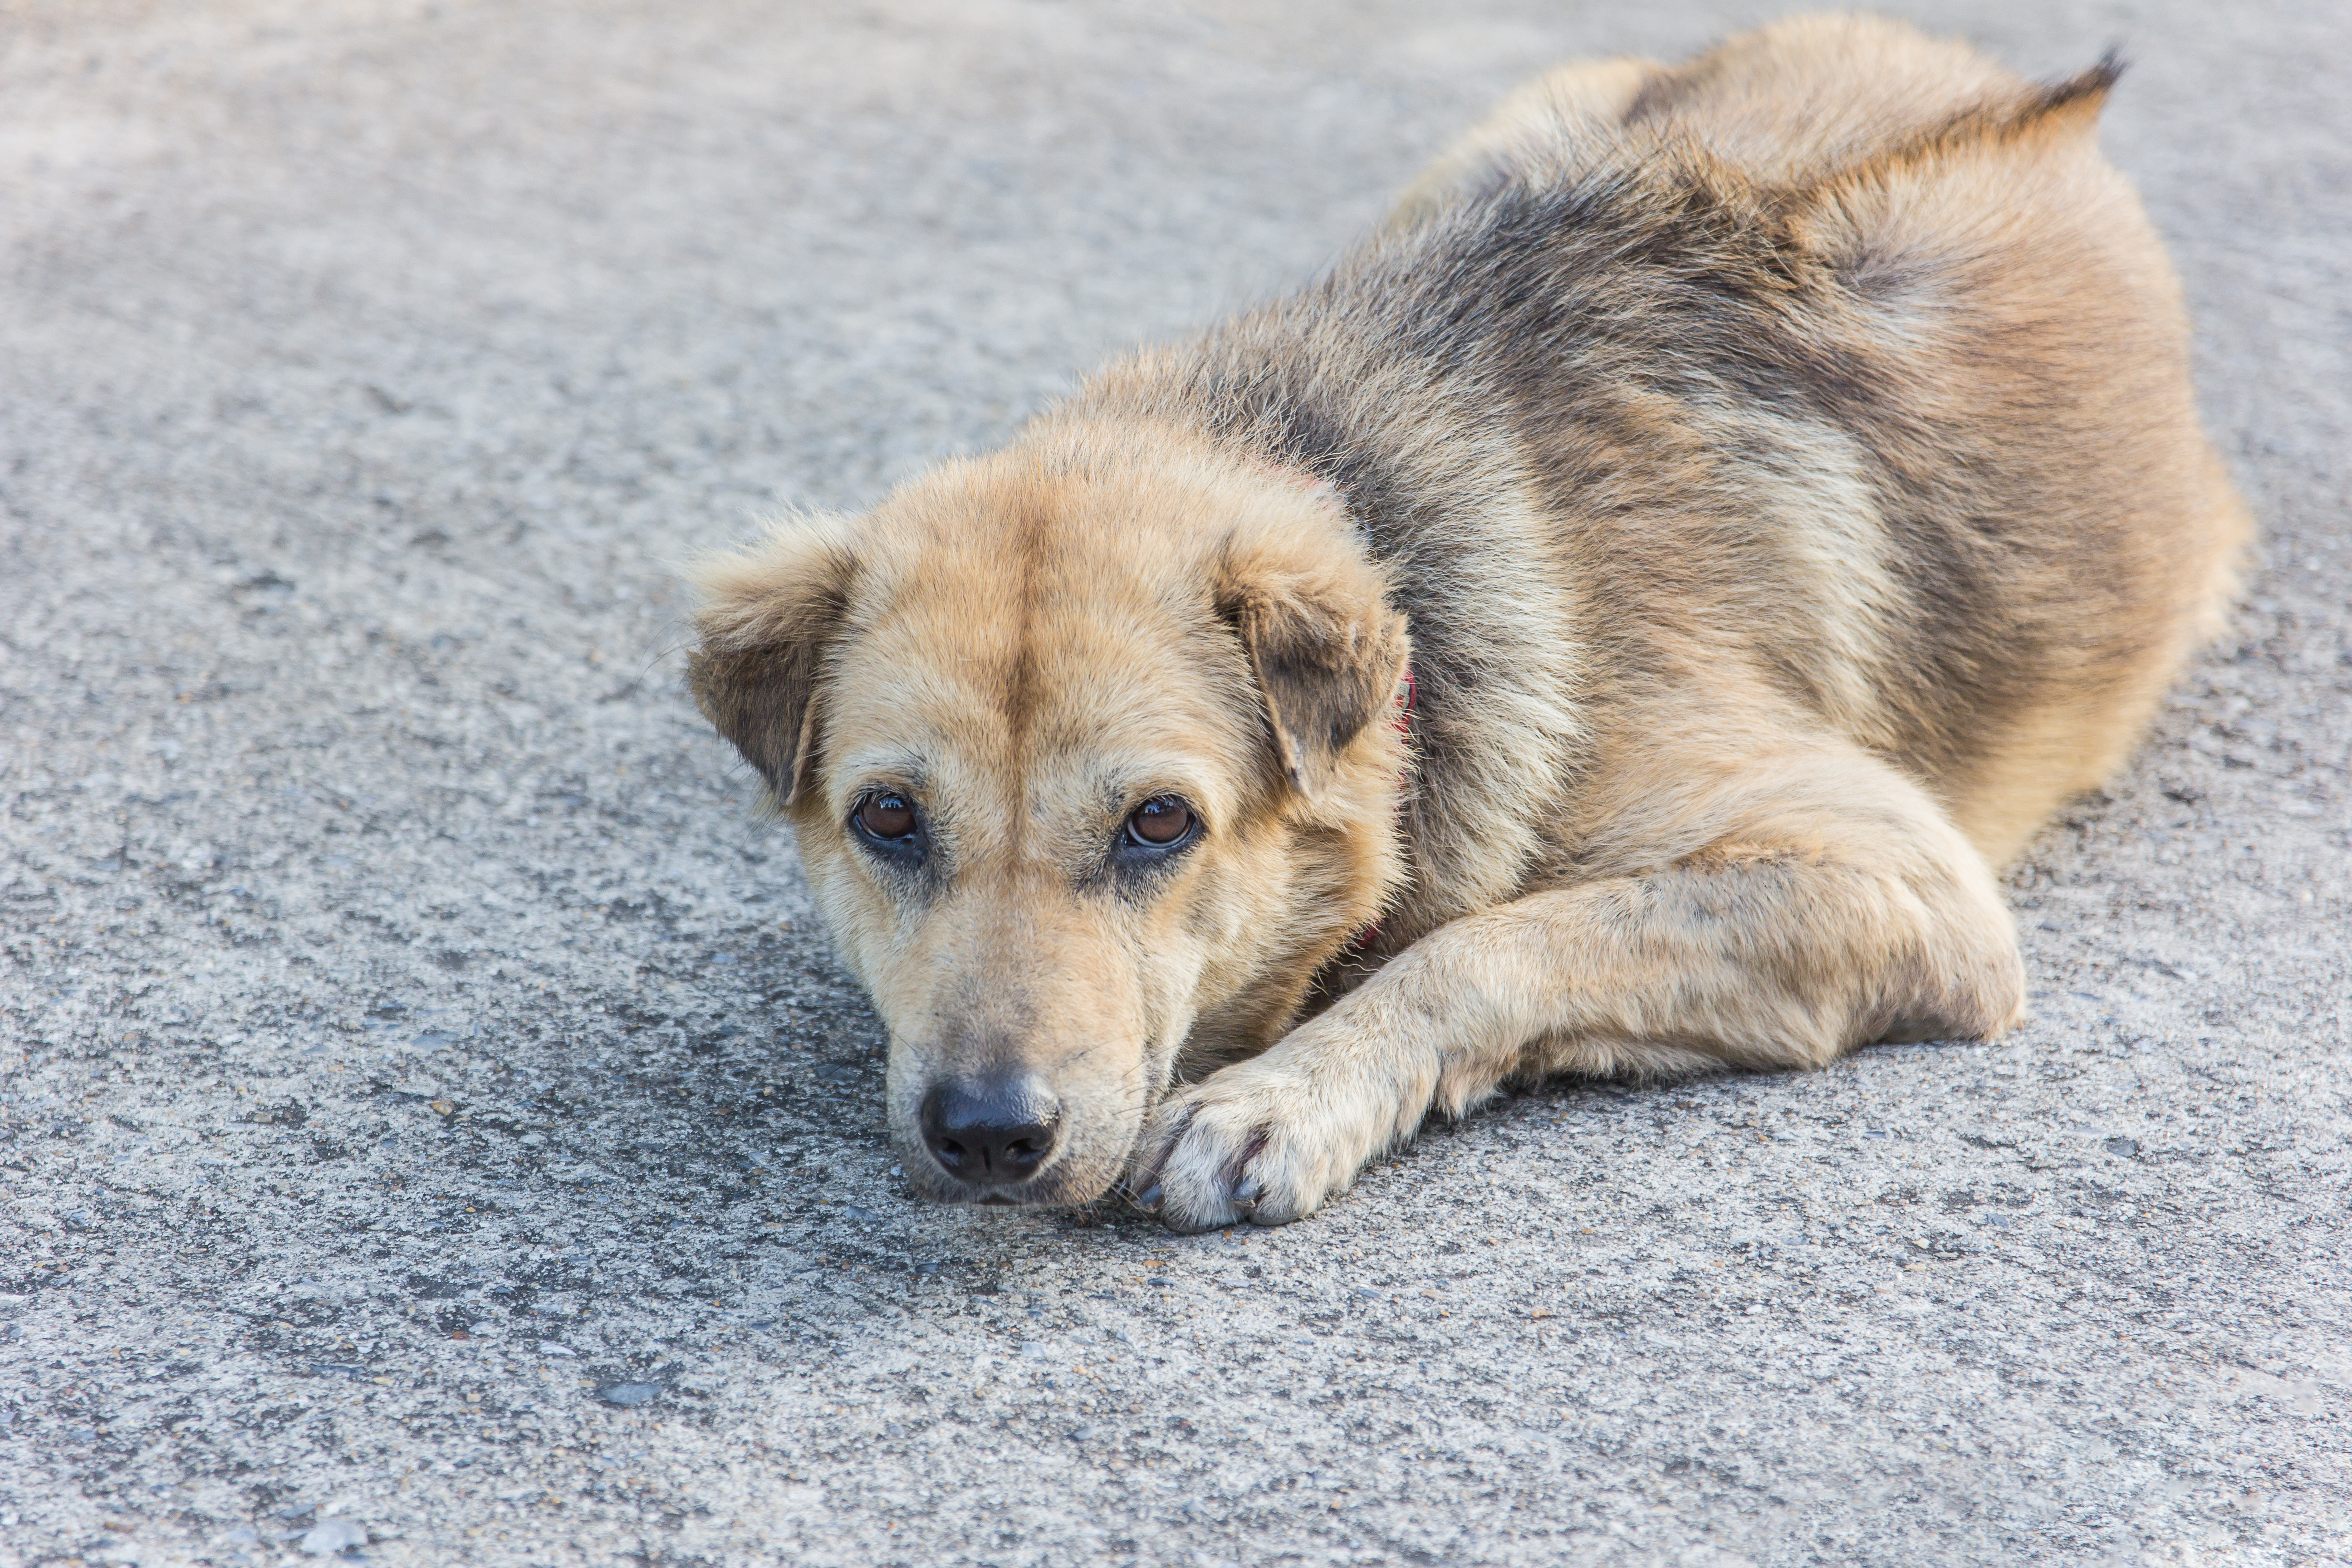 What Happens to Stray Dogs?